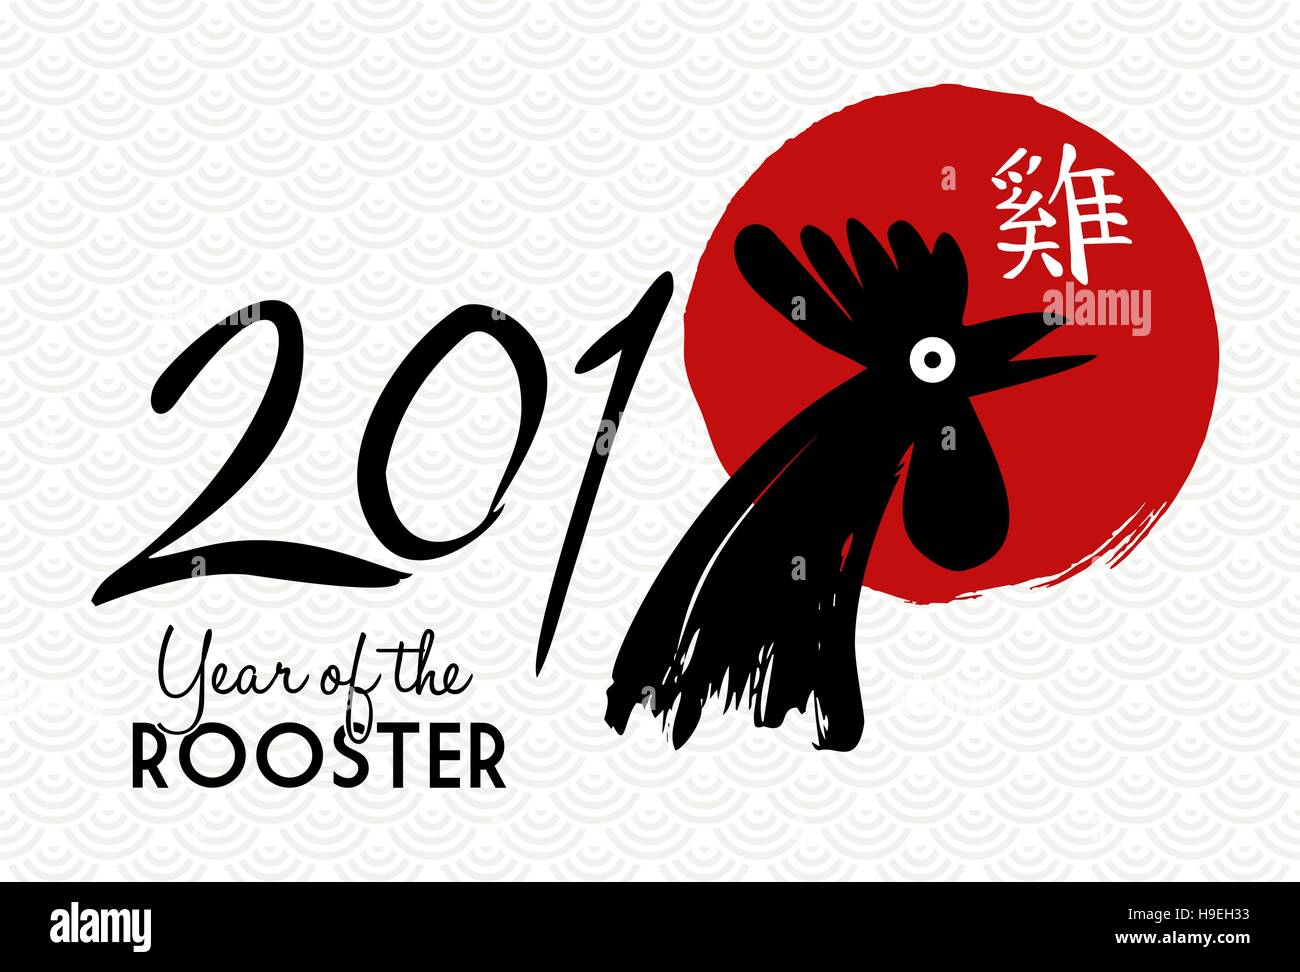 New year 2017 greeting pictures year of rooster happy chinese new year - Happy Chinese New Year 2017 Painted Art Greeting Card With Traditional Calligraphy That Means Rooster Eps10 Vector